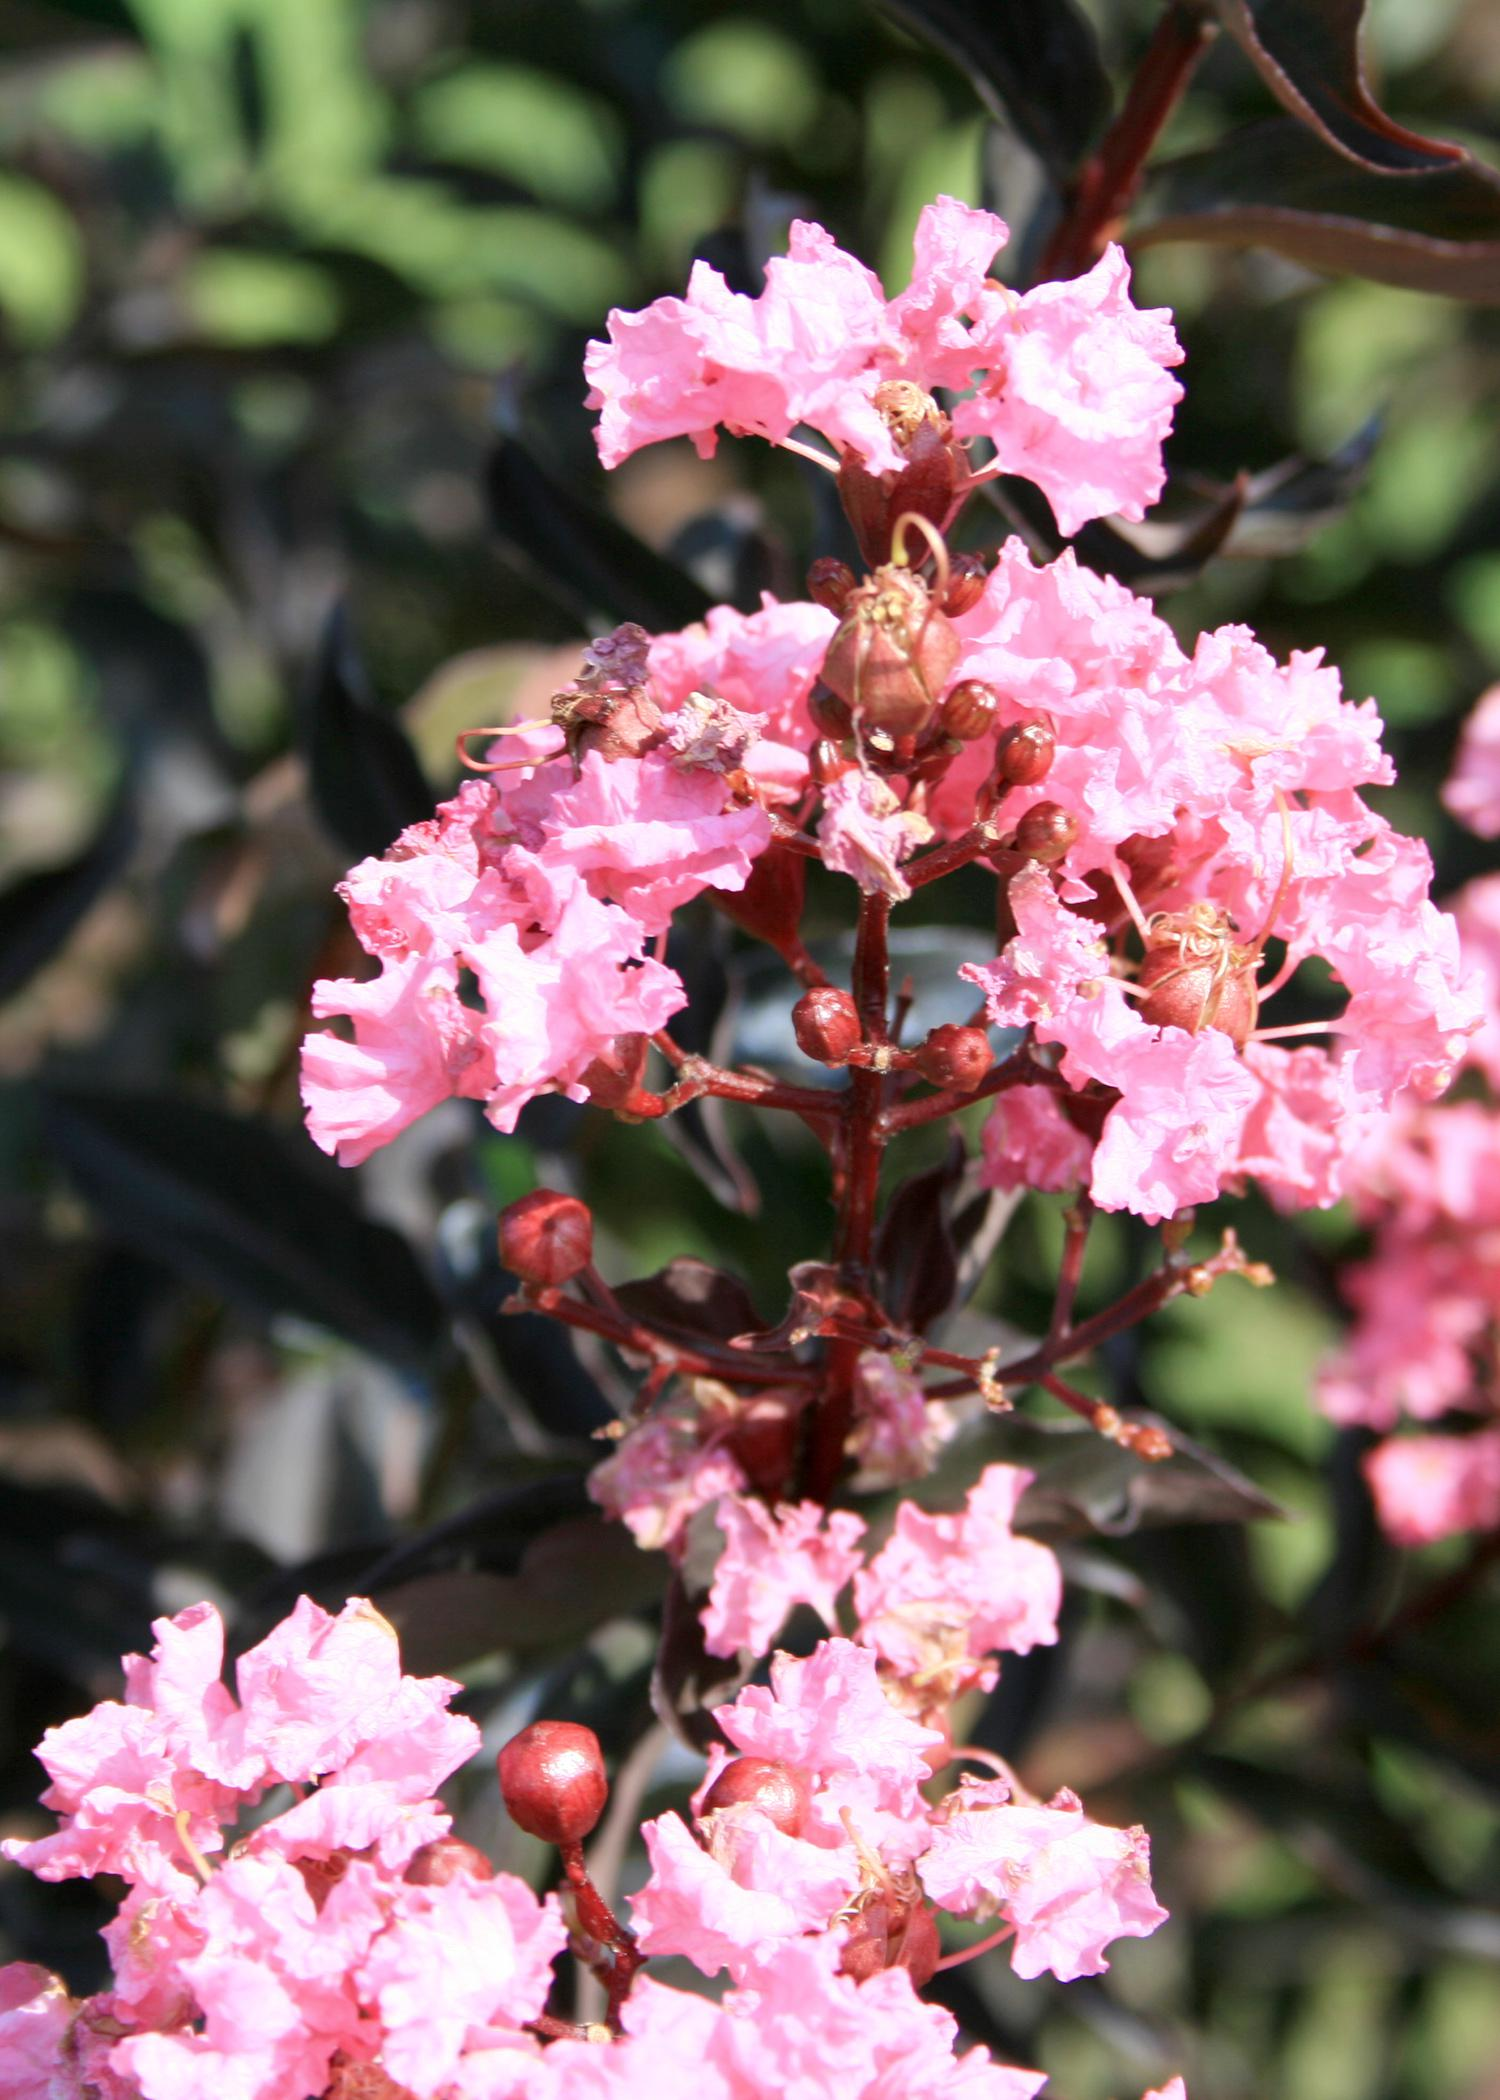 2015 Mississippi Medallion winner Delta Jazz crape myrtle, developed by Mississippi State University, has leaves that emerge a raspberry-maroon and then turn mahogany-brown, accenting large clusters of pink flowers in late summer. (Photo by MSU Extension Service/Gary Bachman)